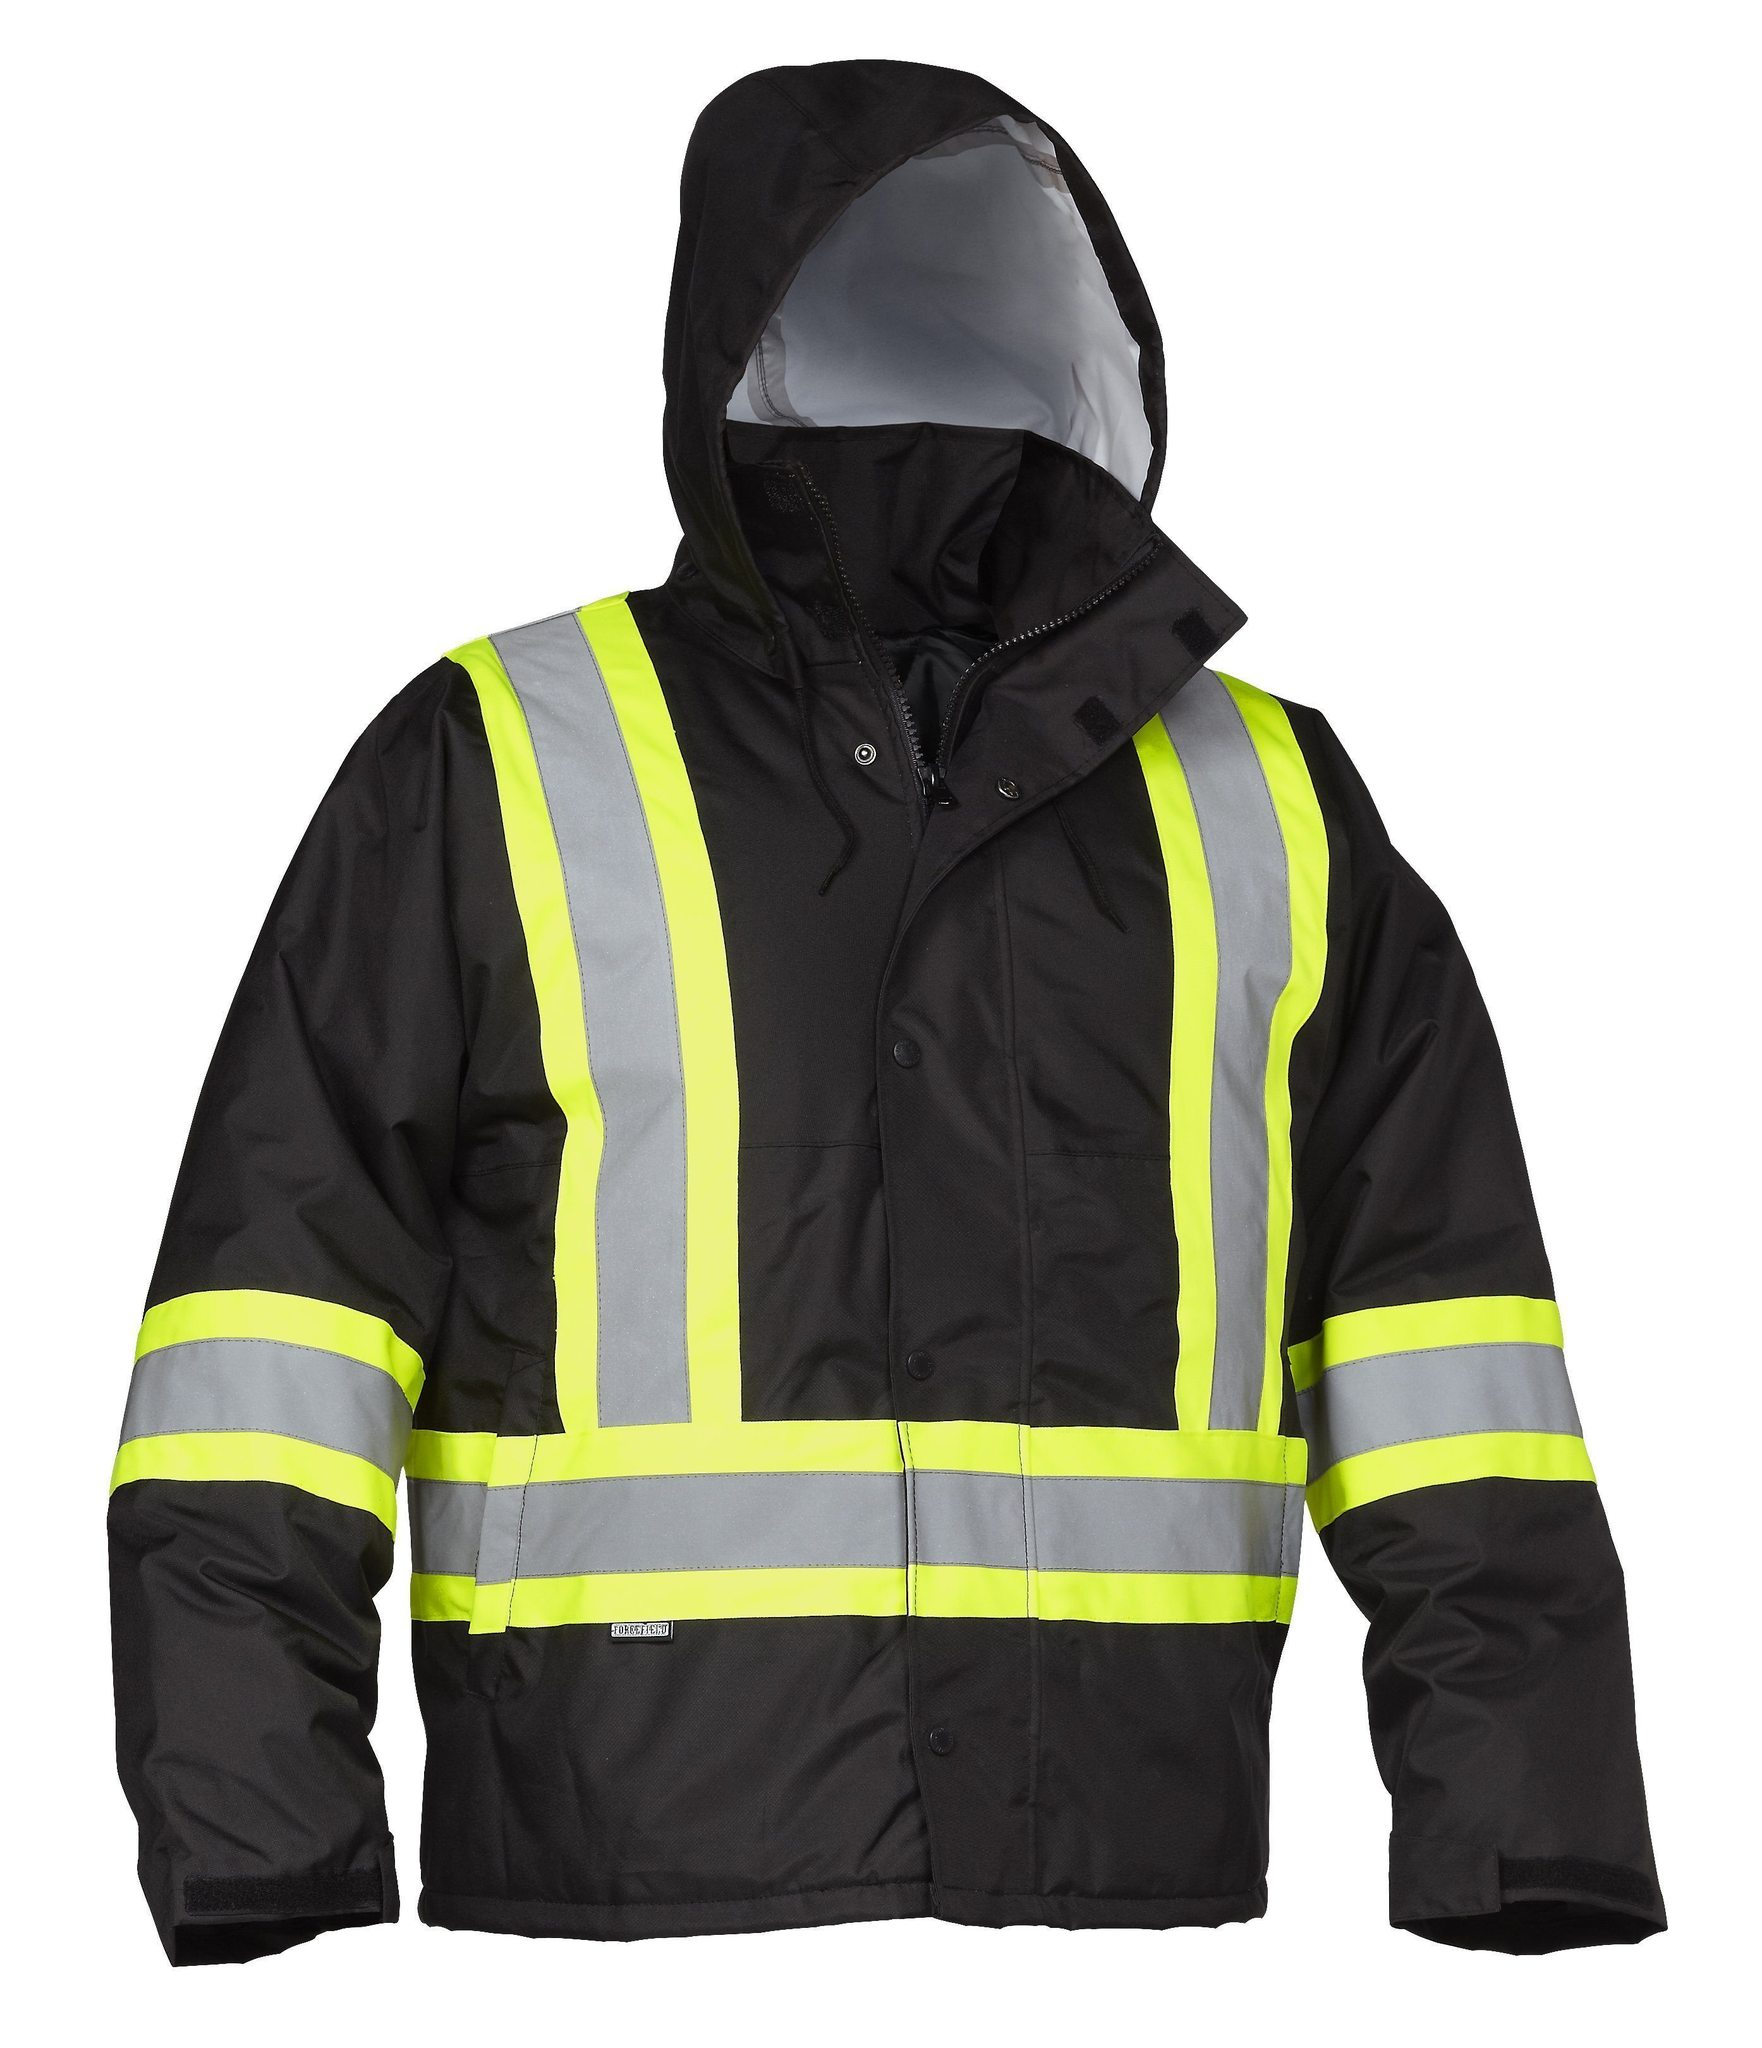 Forcefield Hi-Vis Safety Drivers Jacket 024-EN610BK